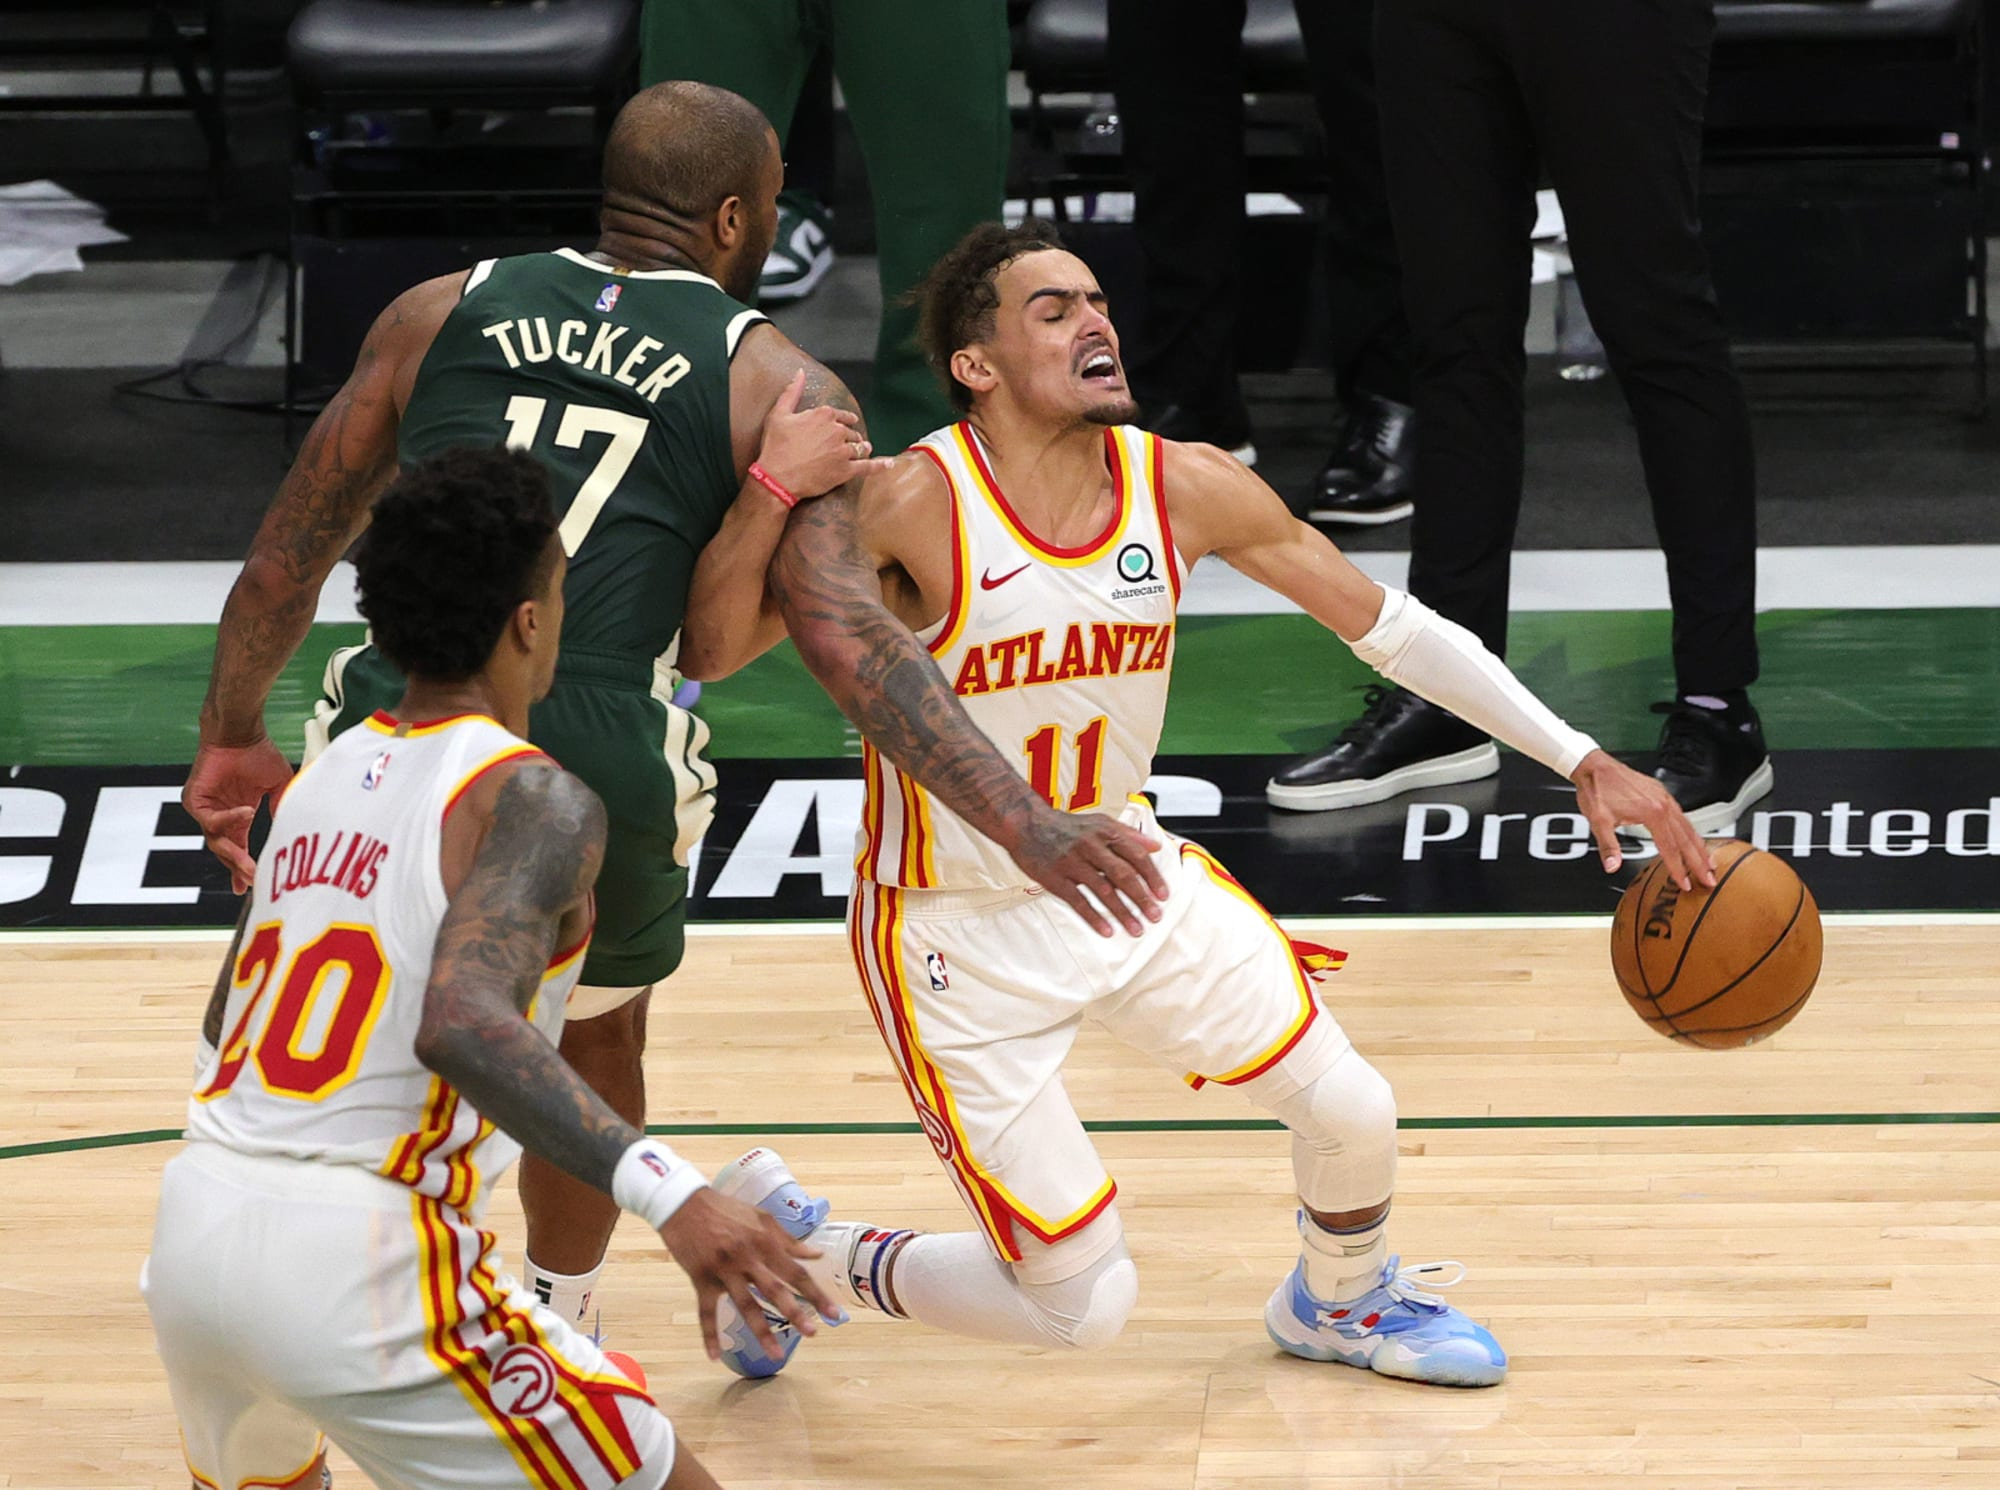 Bucks vs Hawks prediction, odds, spread, line, over/under and betting info for Game 2